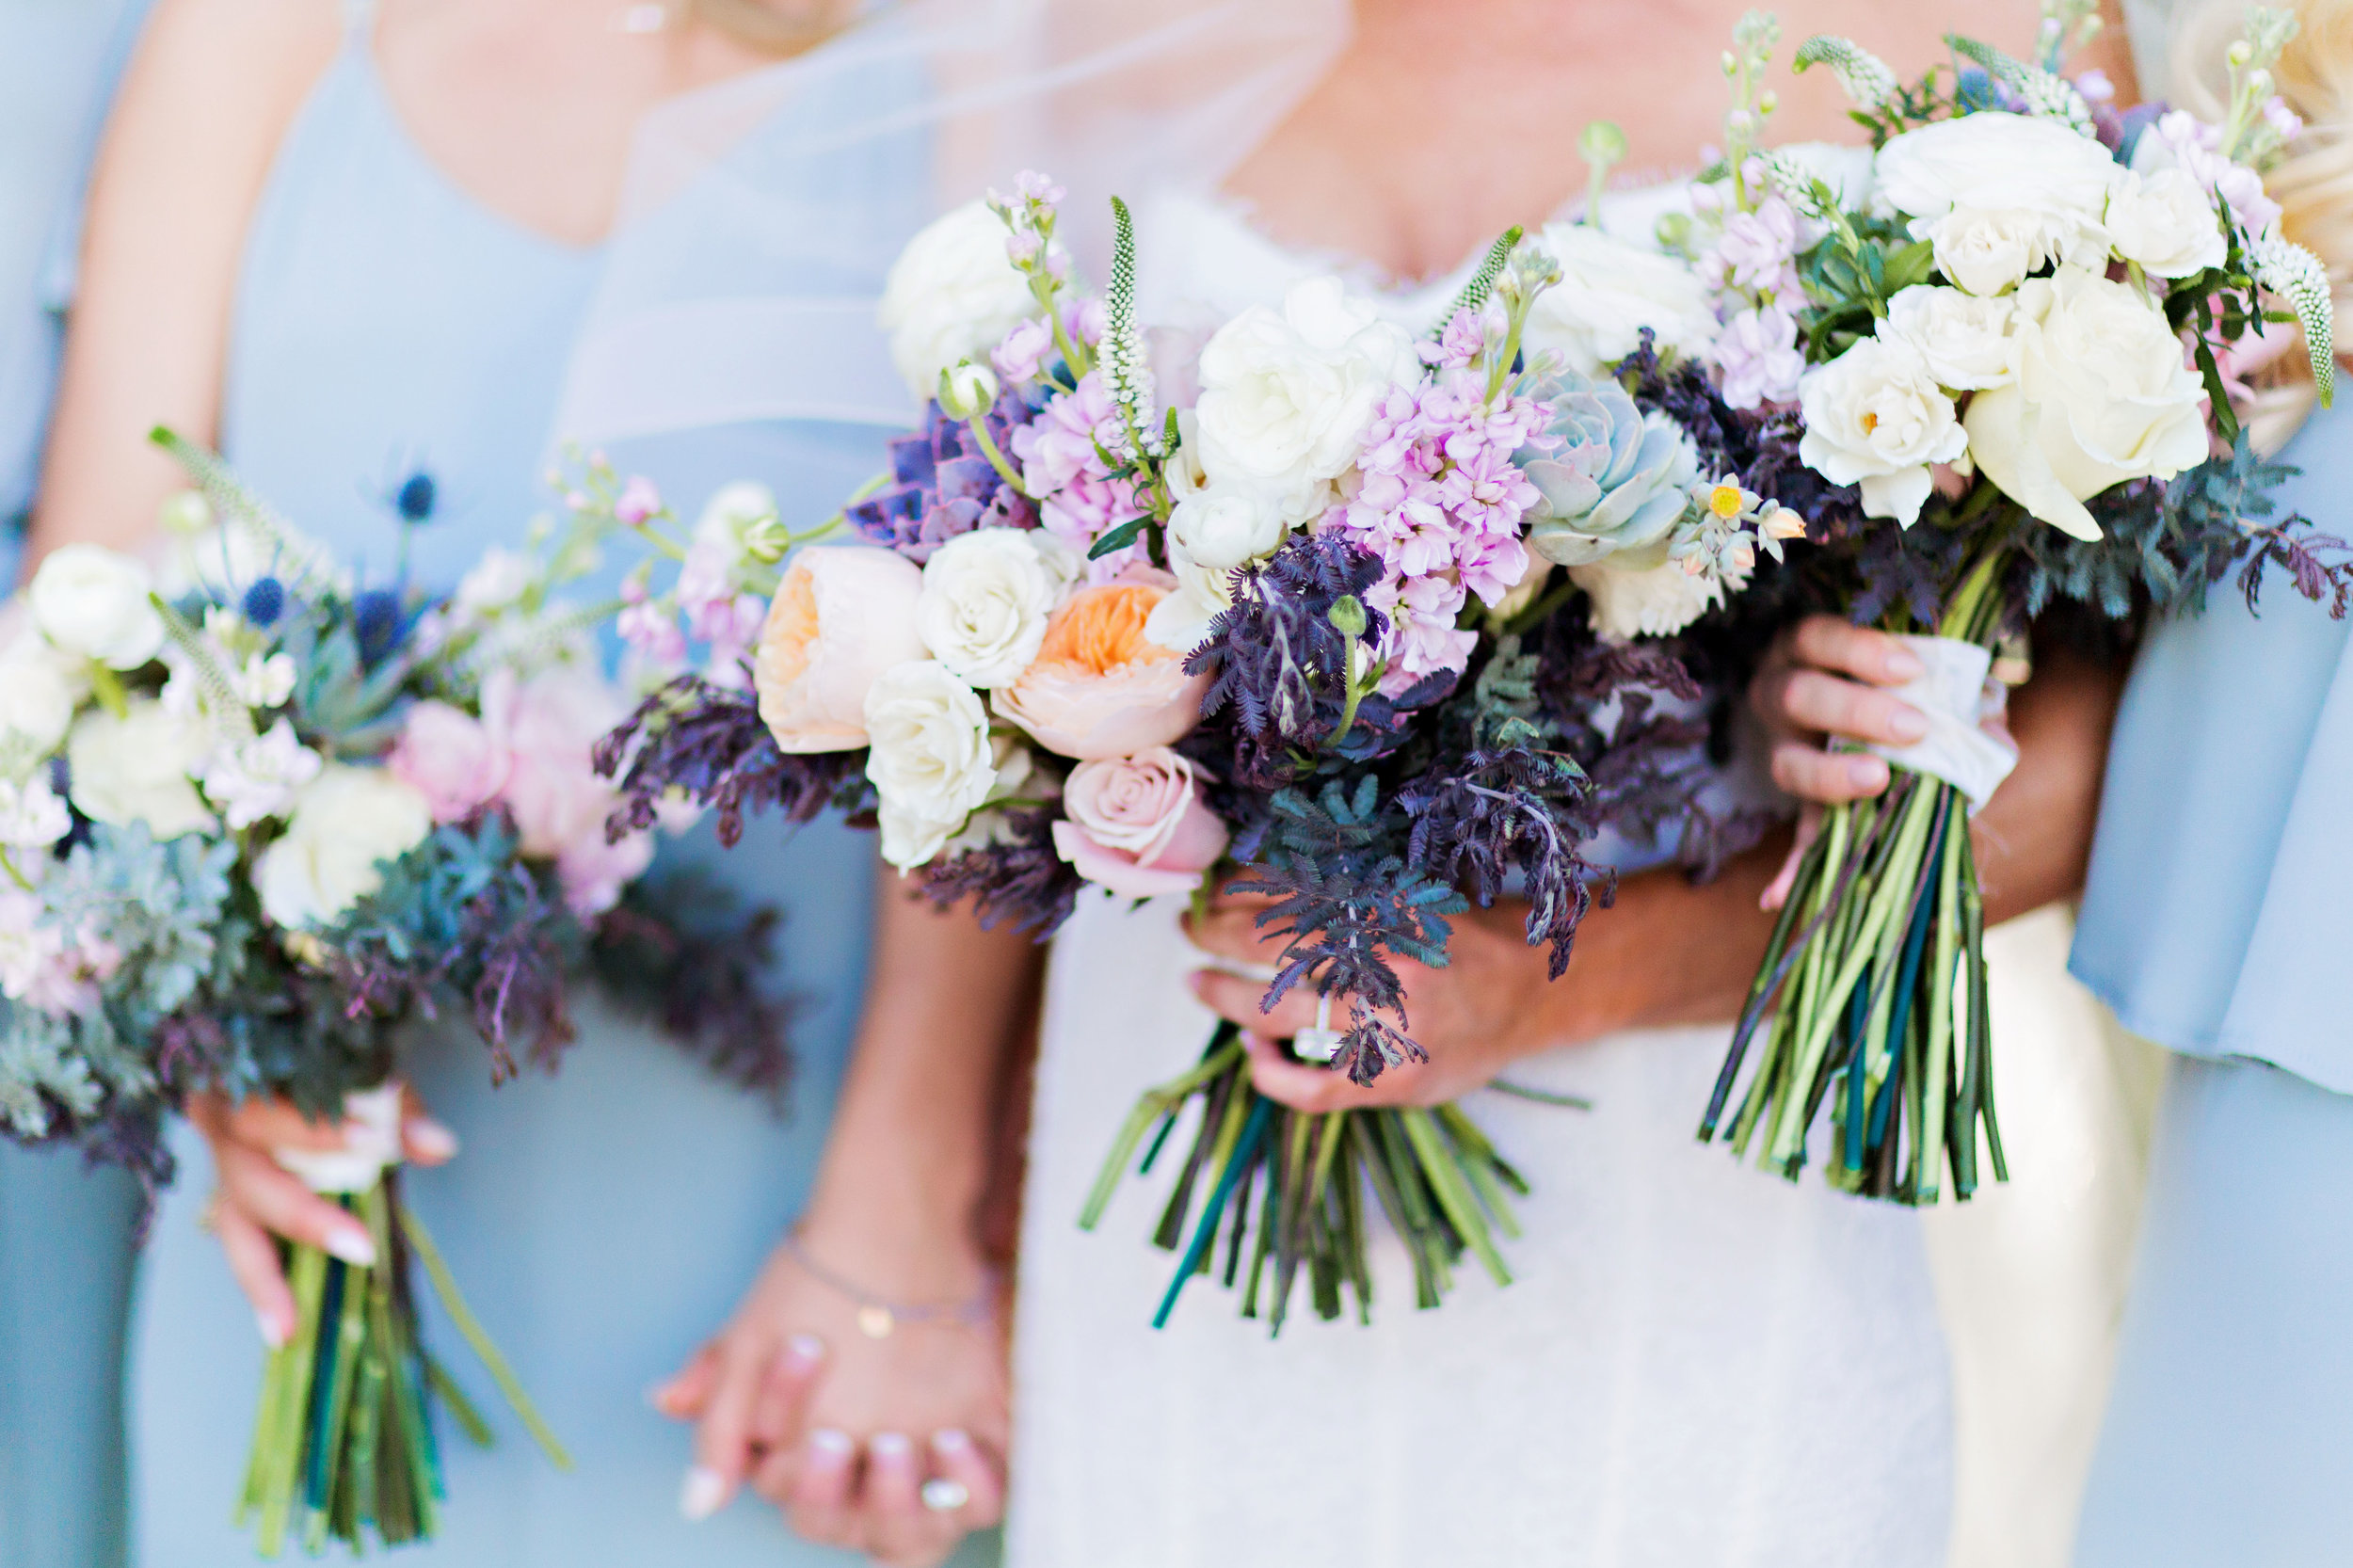 Classic blush, dusty blue, and lavender bridesmaids bouquets